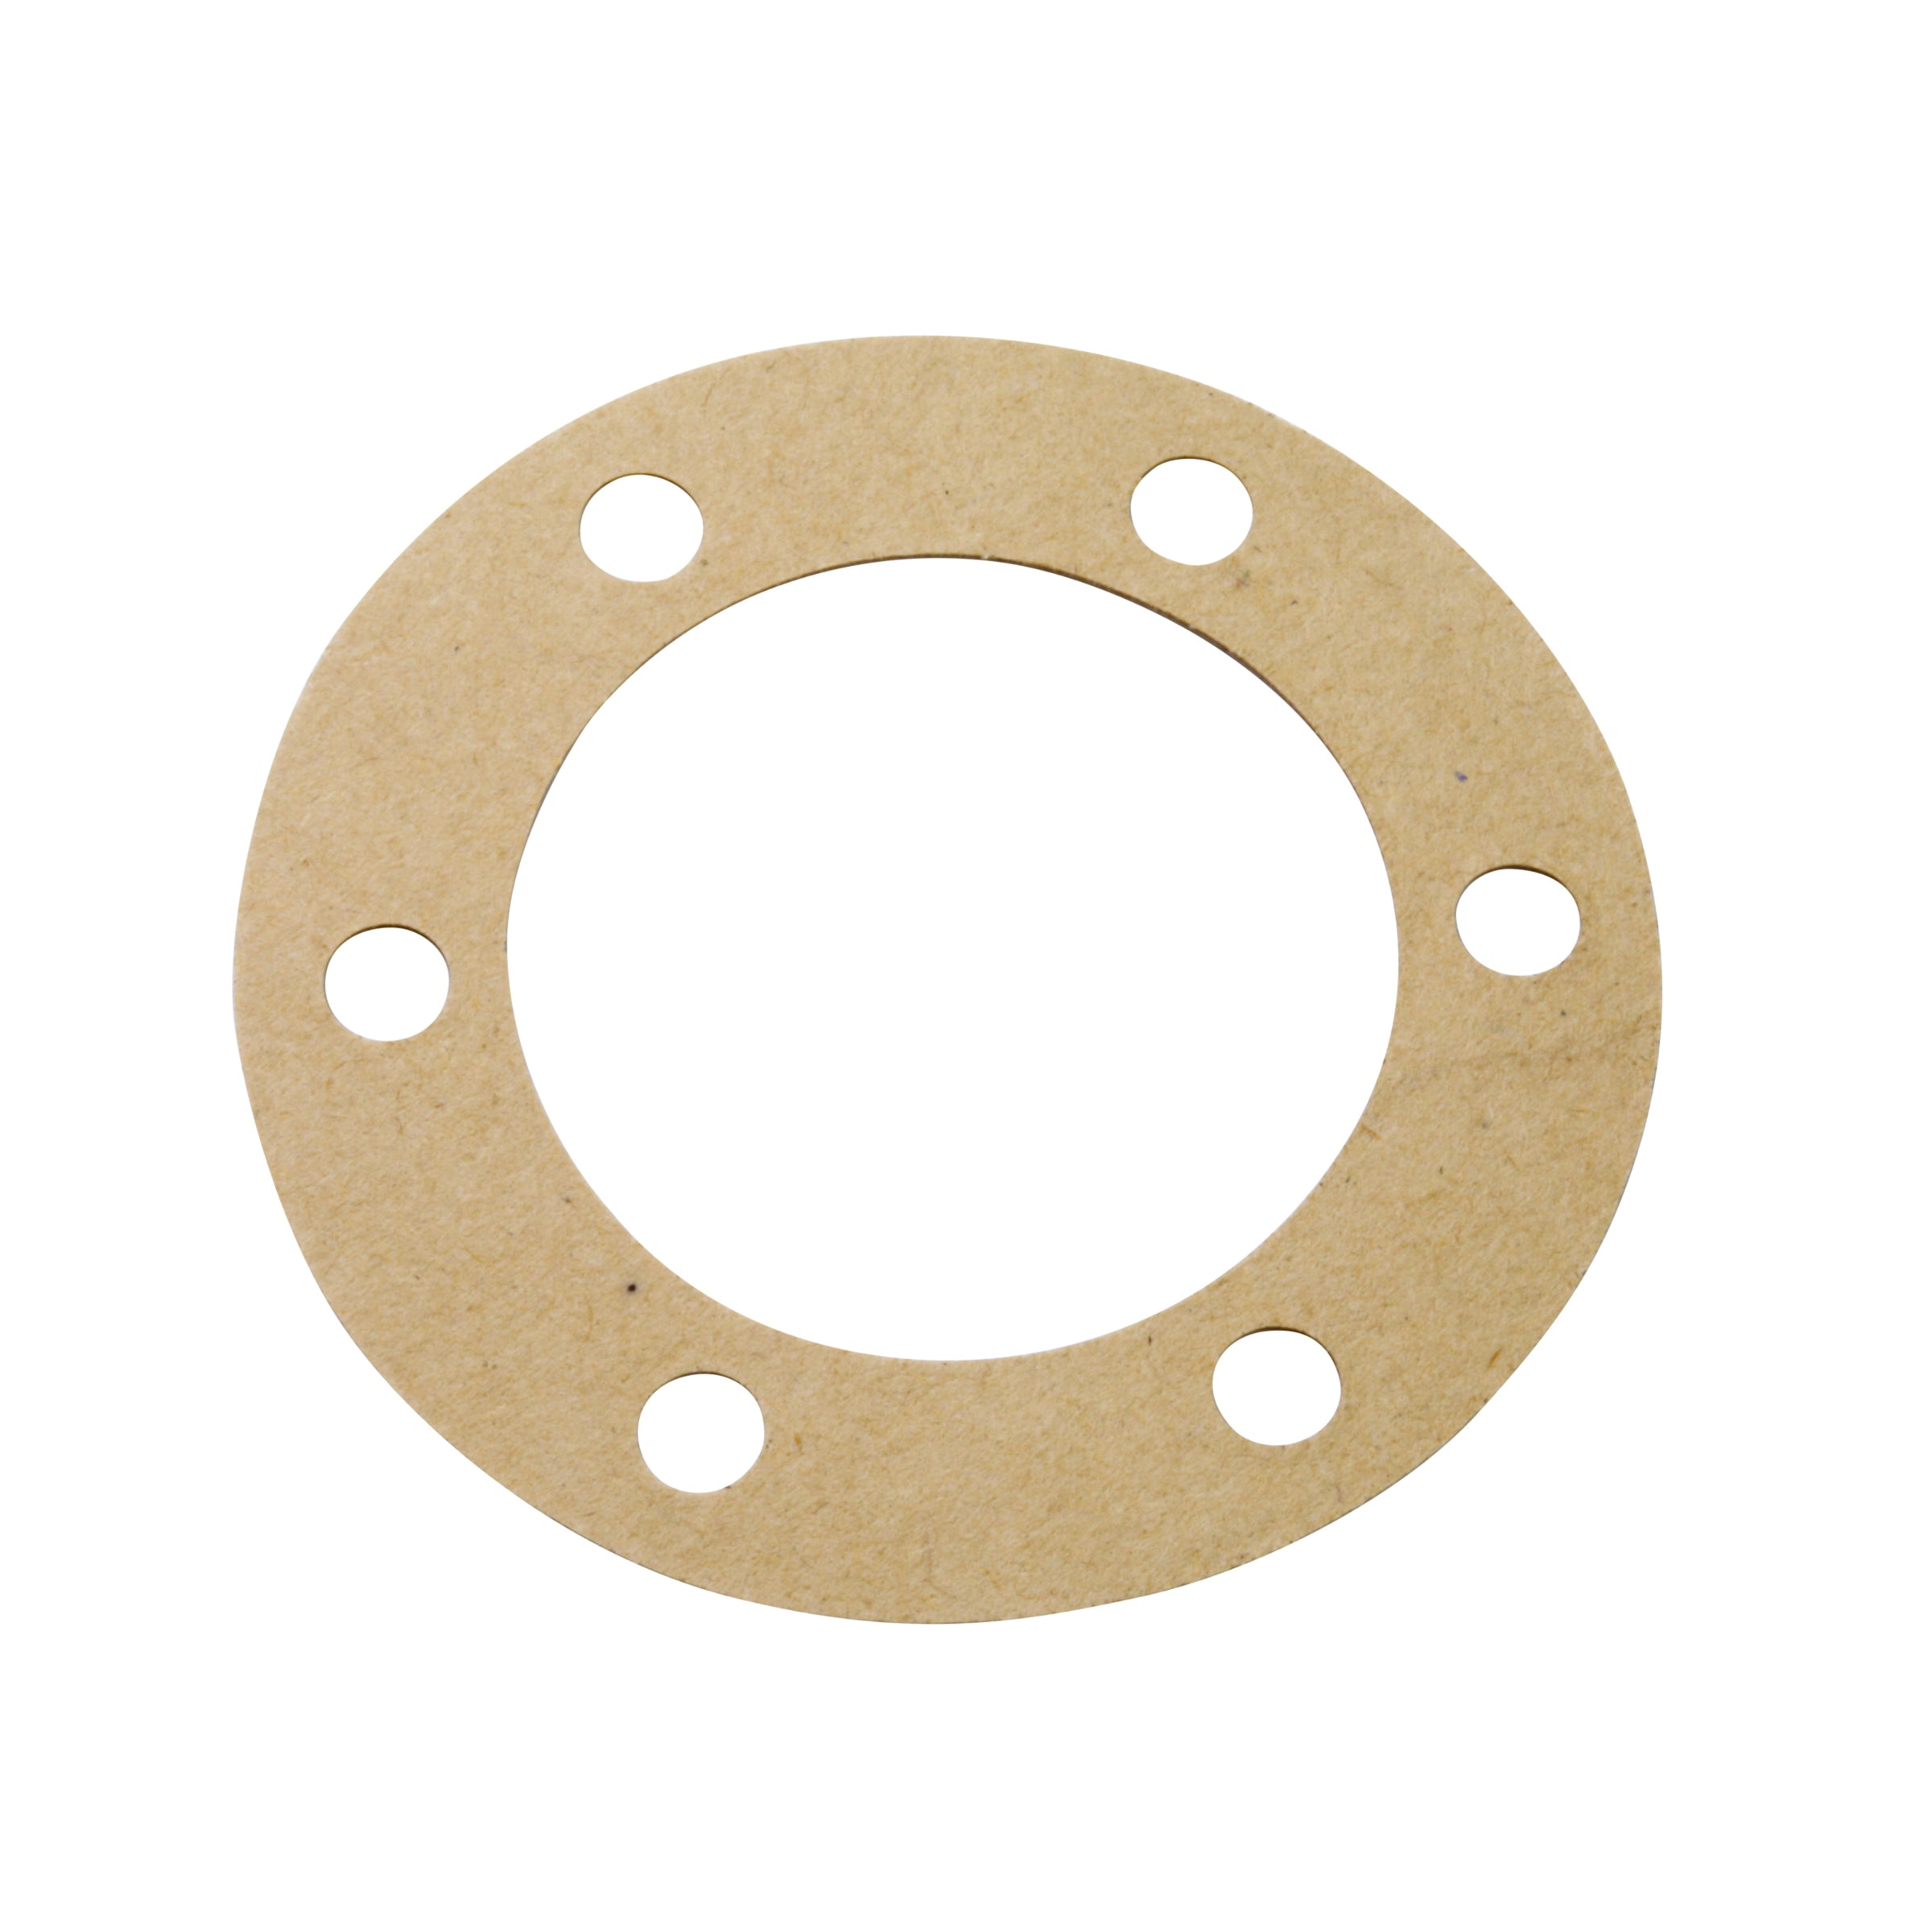 Sending Unit to Tank Gasket • 1932-35 Ford